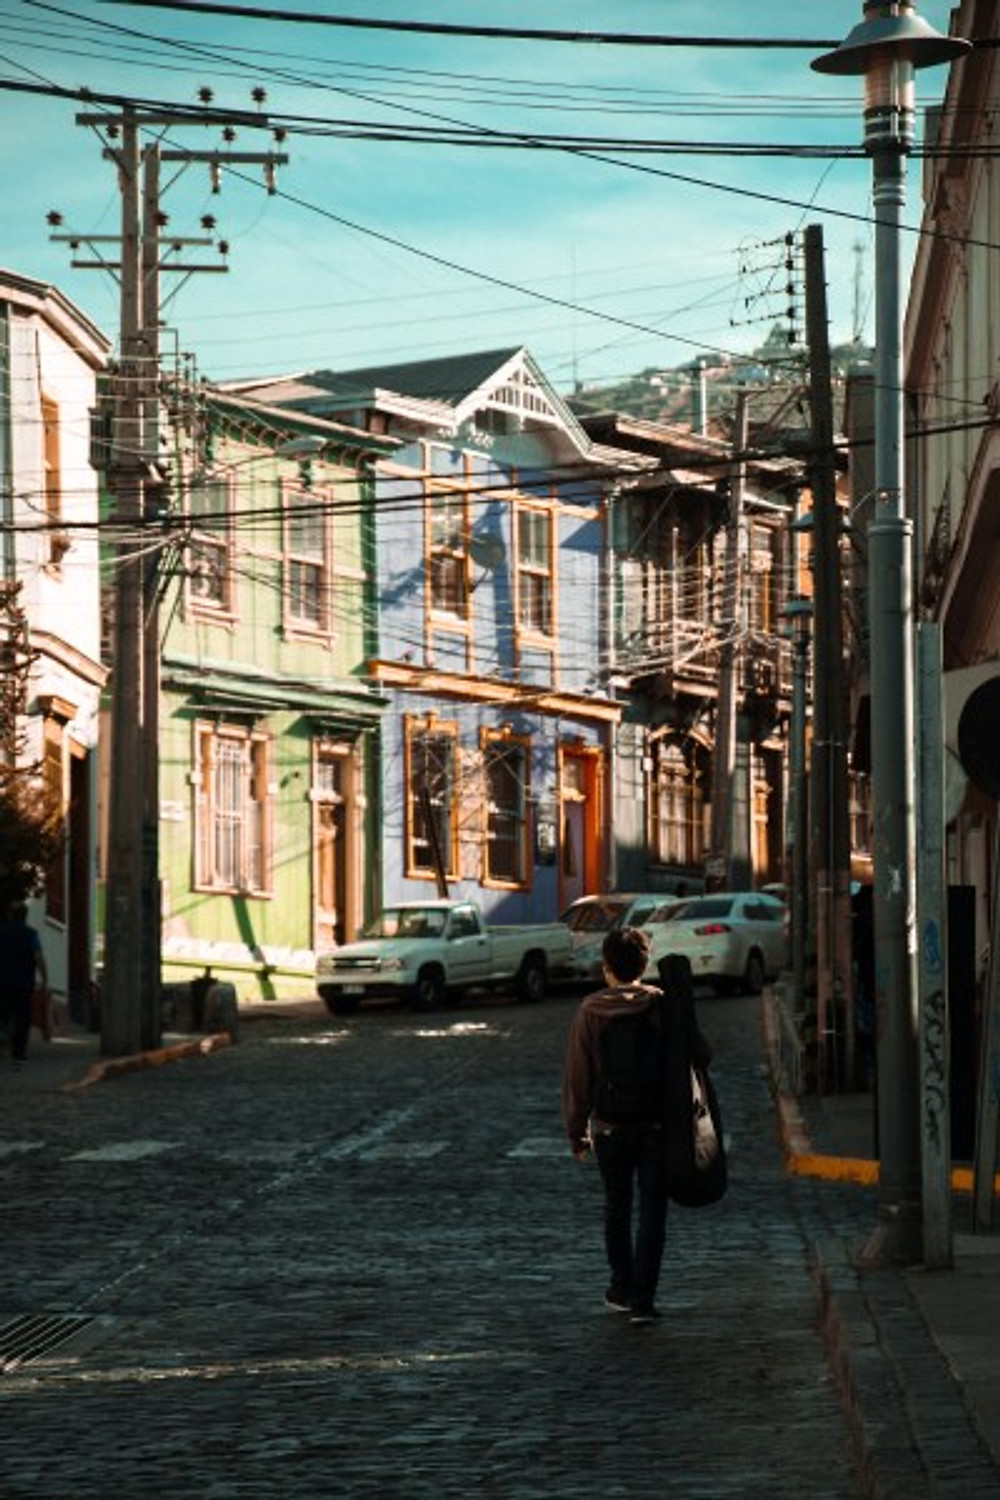 Exploring the streets of Valparaiso, Chile in 2018.